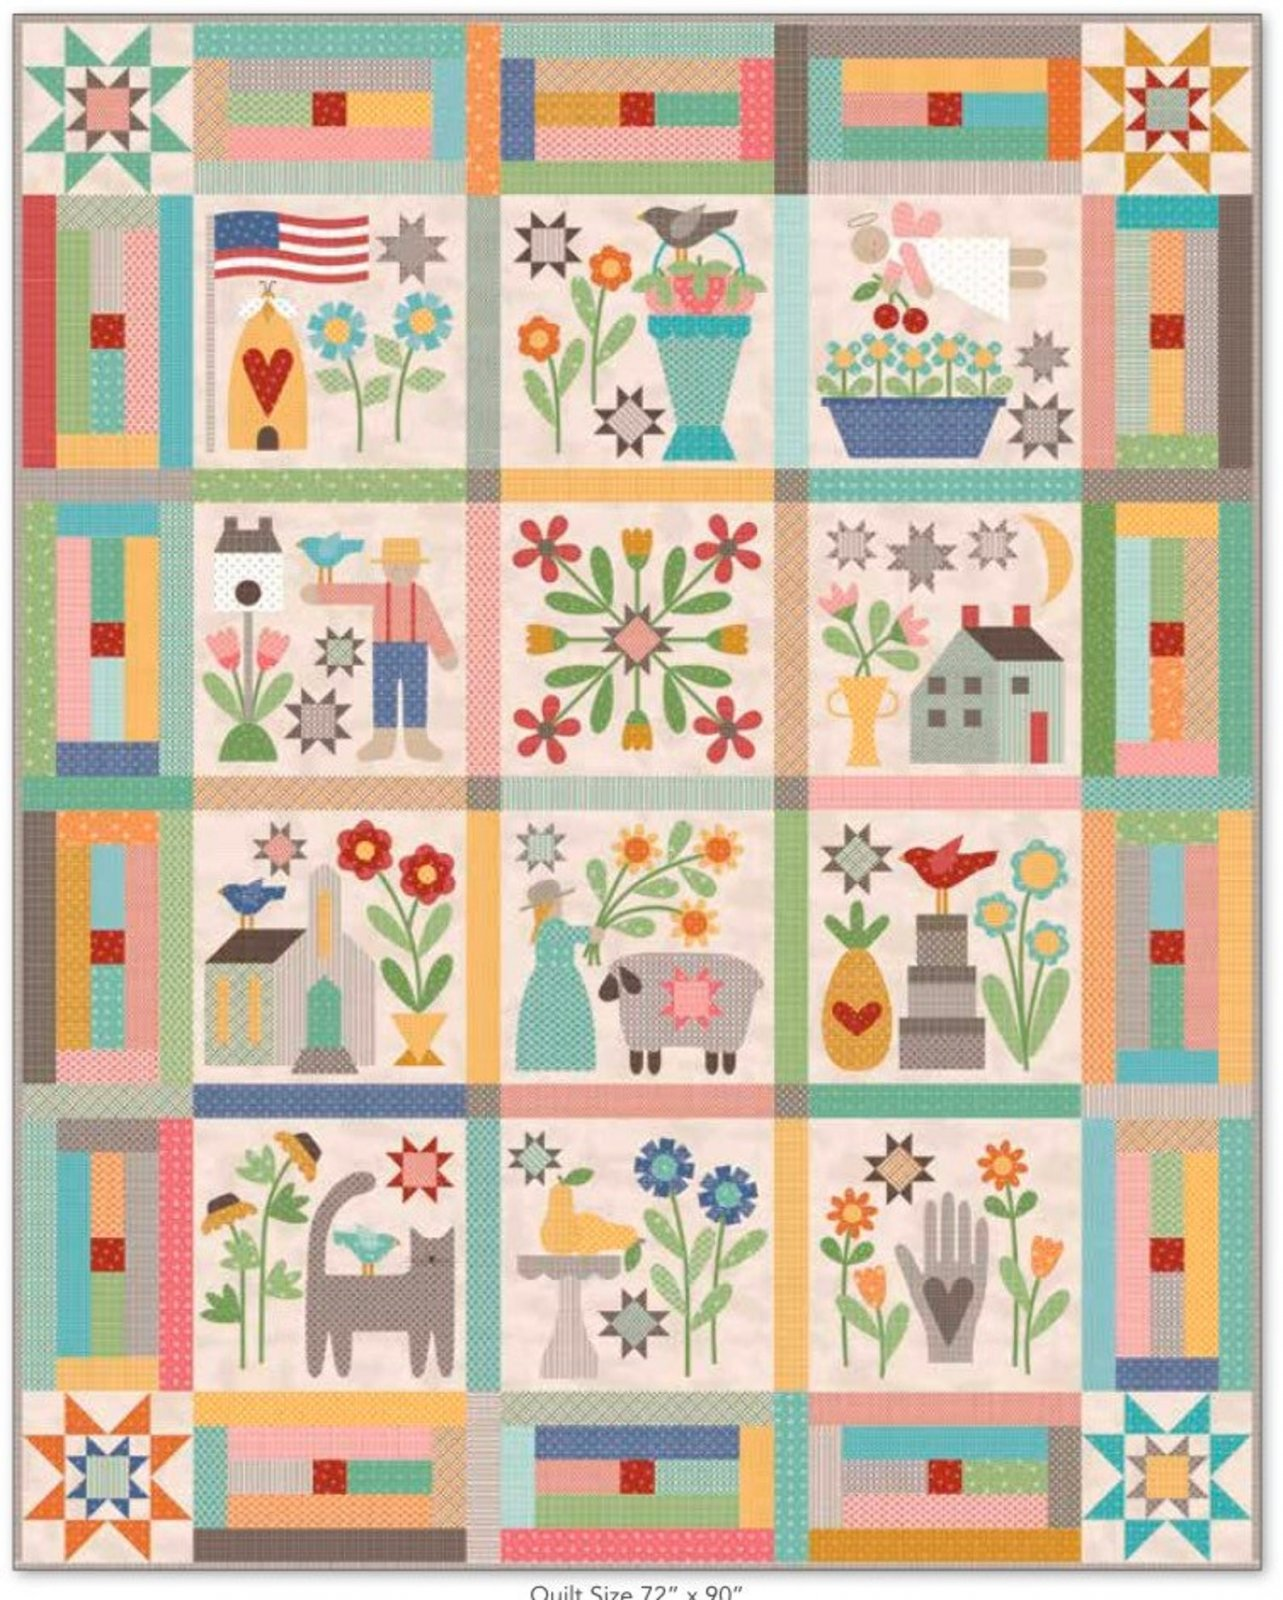 PRIM Quilt KIT RESERVATION with Charm